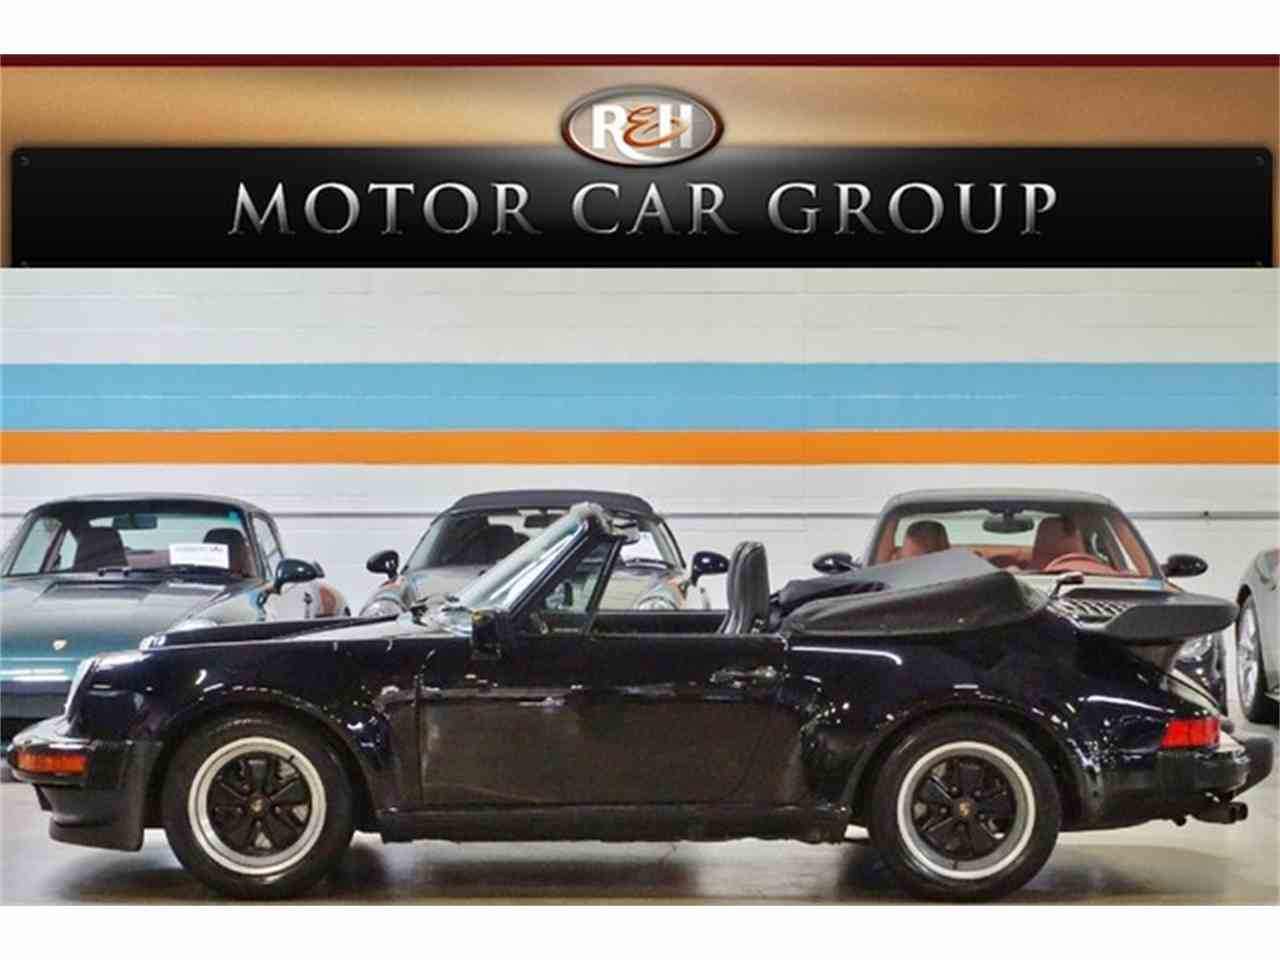 Large Picture of '89 Porsche 911 Turbo - $144,990.00 Offered by R&H Motor Car Group - EVKF